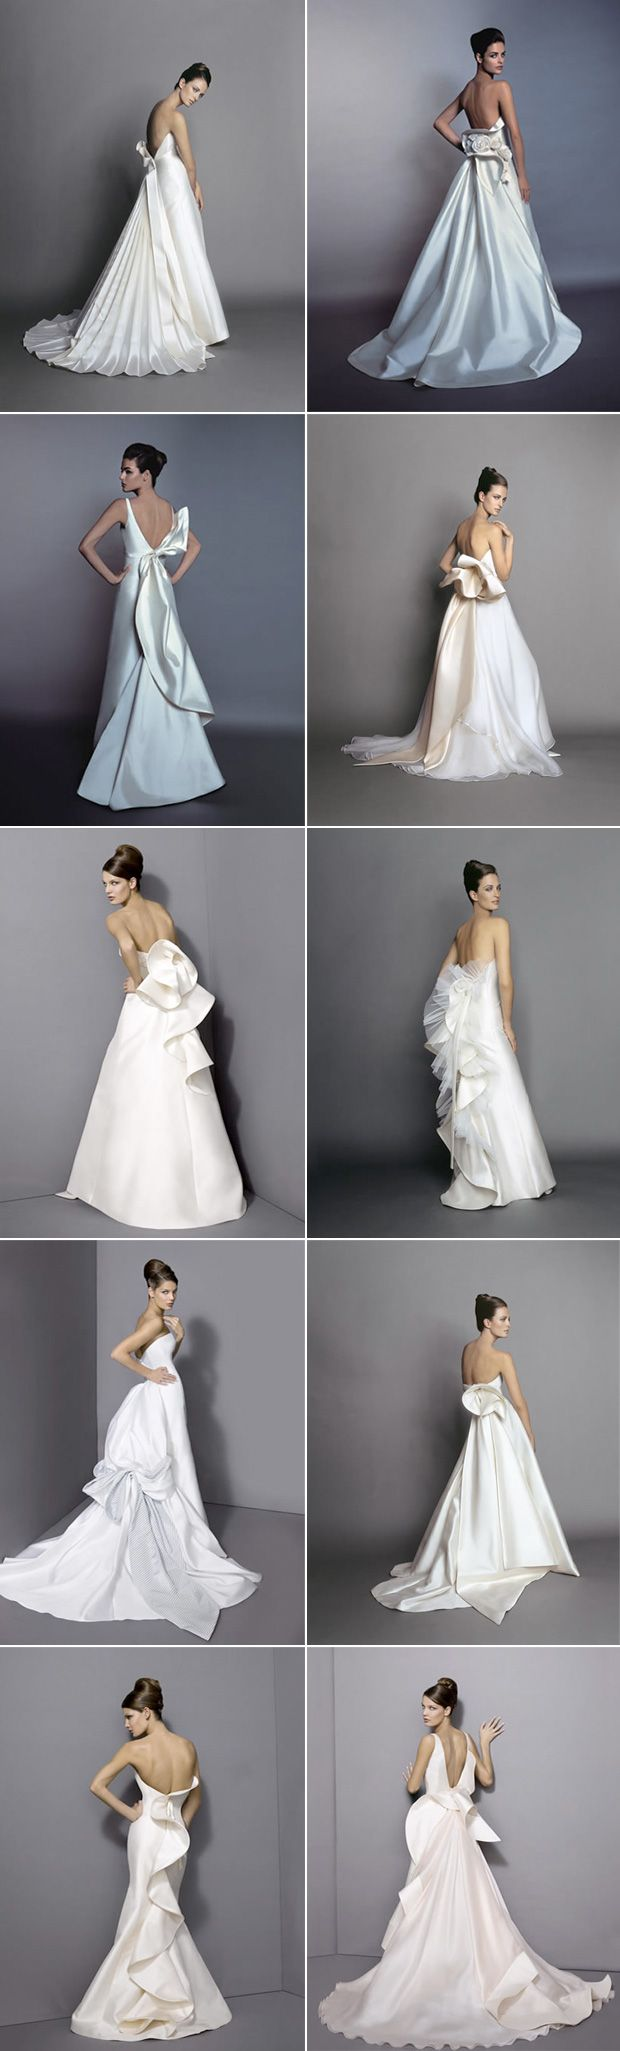 Antonio Riva Wedding Dresses | OMG I'm Getting Married UK Wedding Blog | UK Wedding Design and Inspiration for the fabulous and fashion forward bride to be.